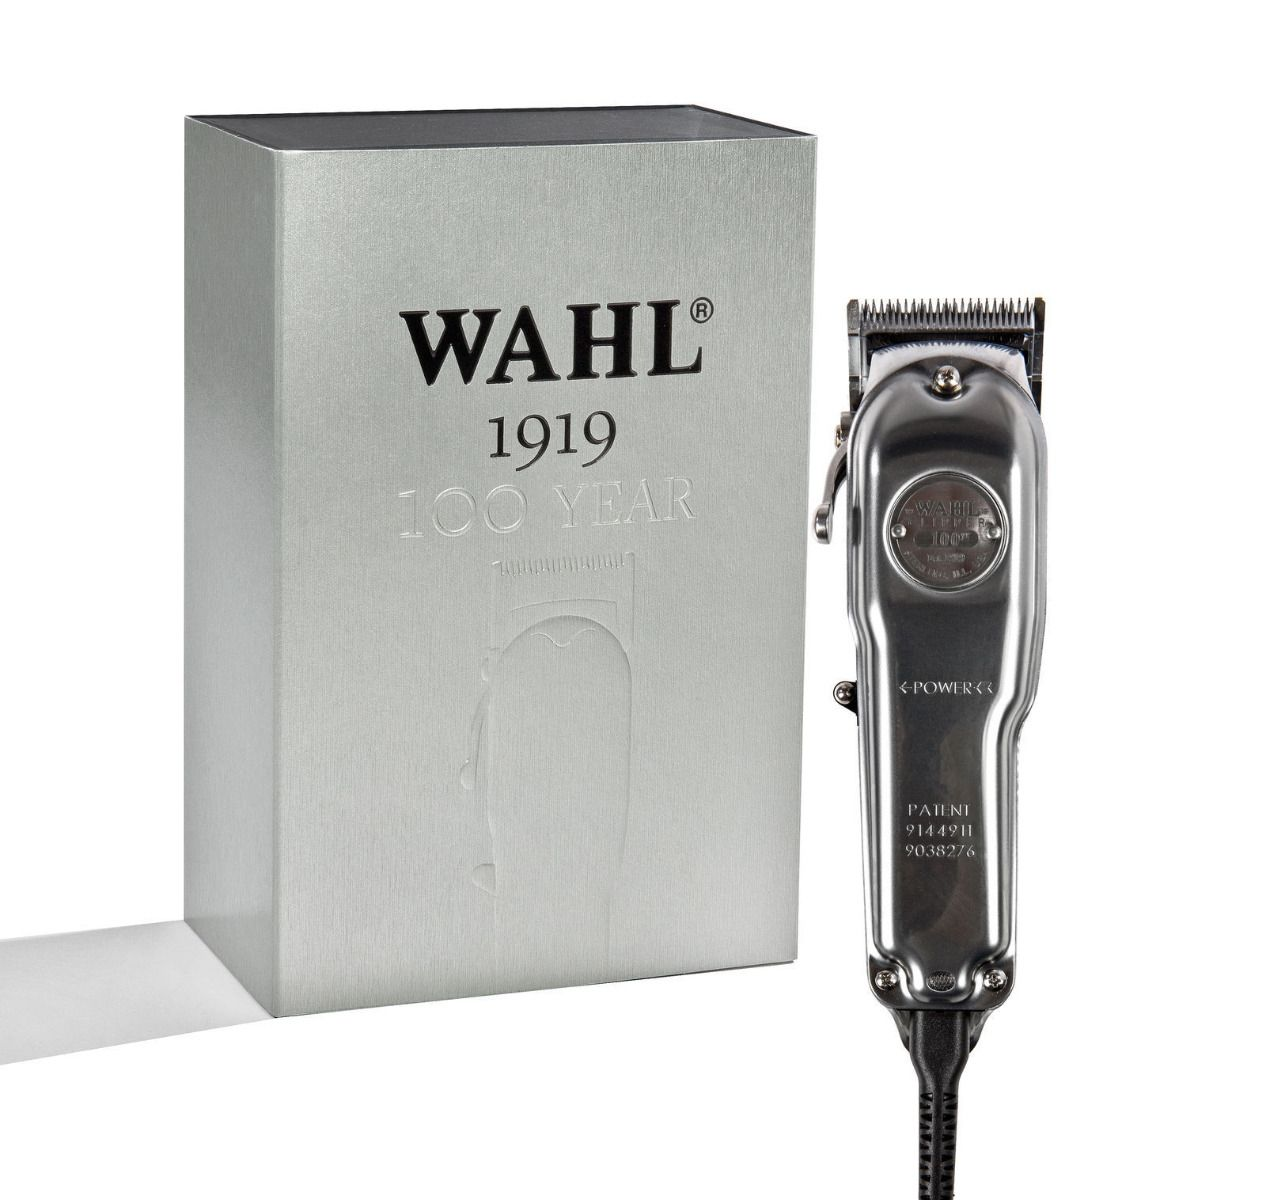 Wahl 100 Year Anniversary Aluminium Cord/Cordless Limited Edition Hair Clipper